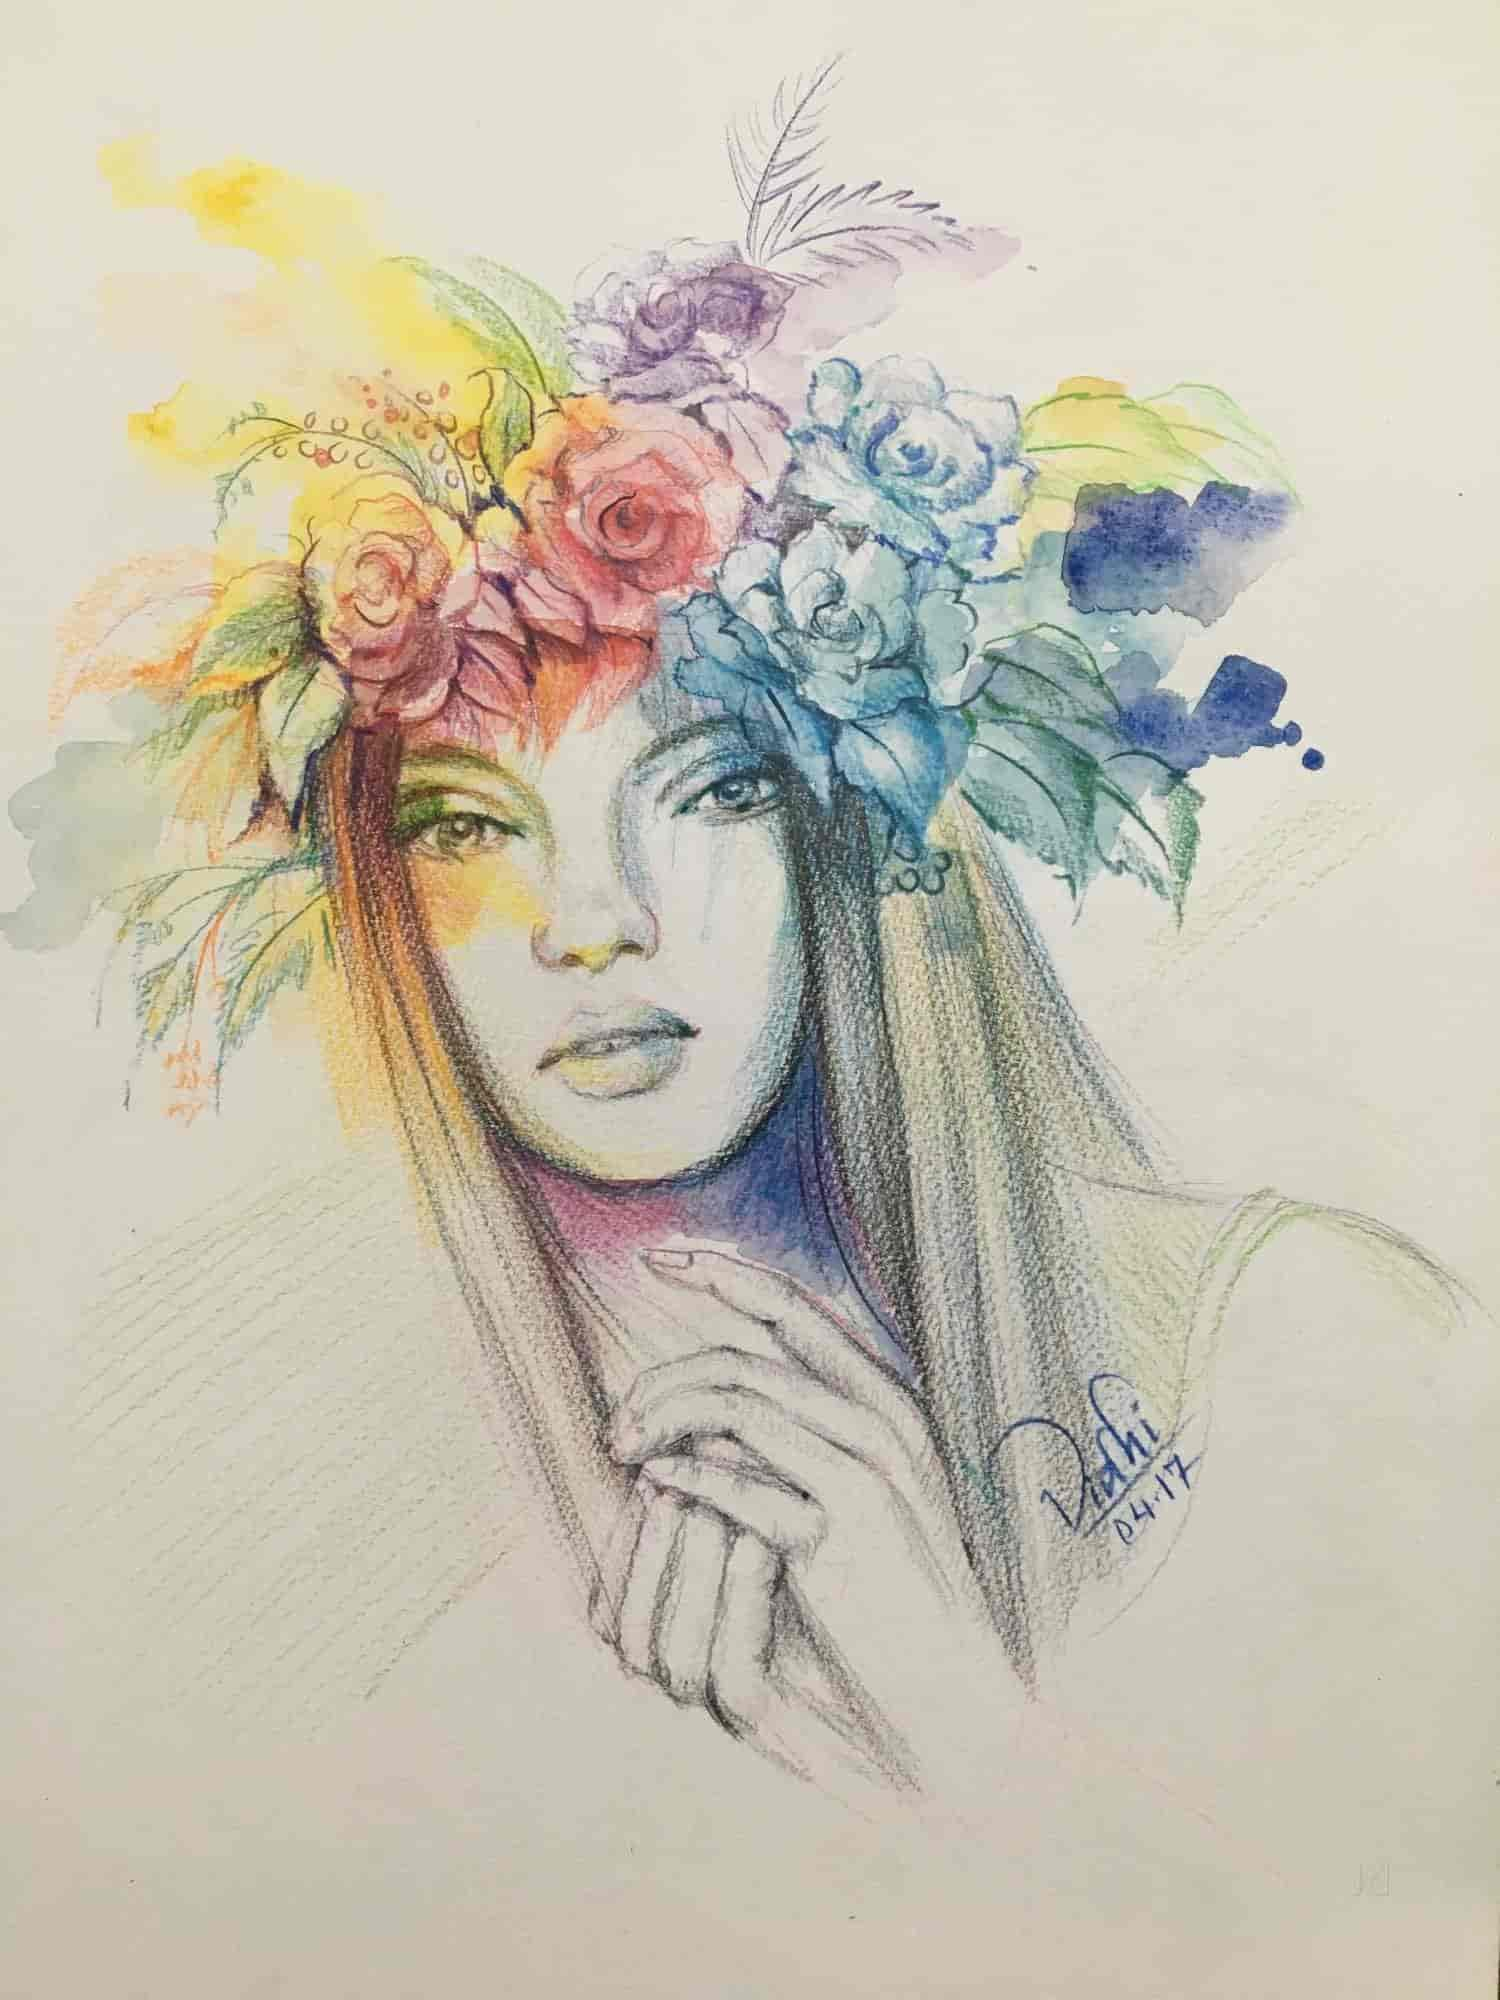 Different strokes drawing and painting classes kandivali west different strokes drawing painting classes drawing classes in mumbai justdial